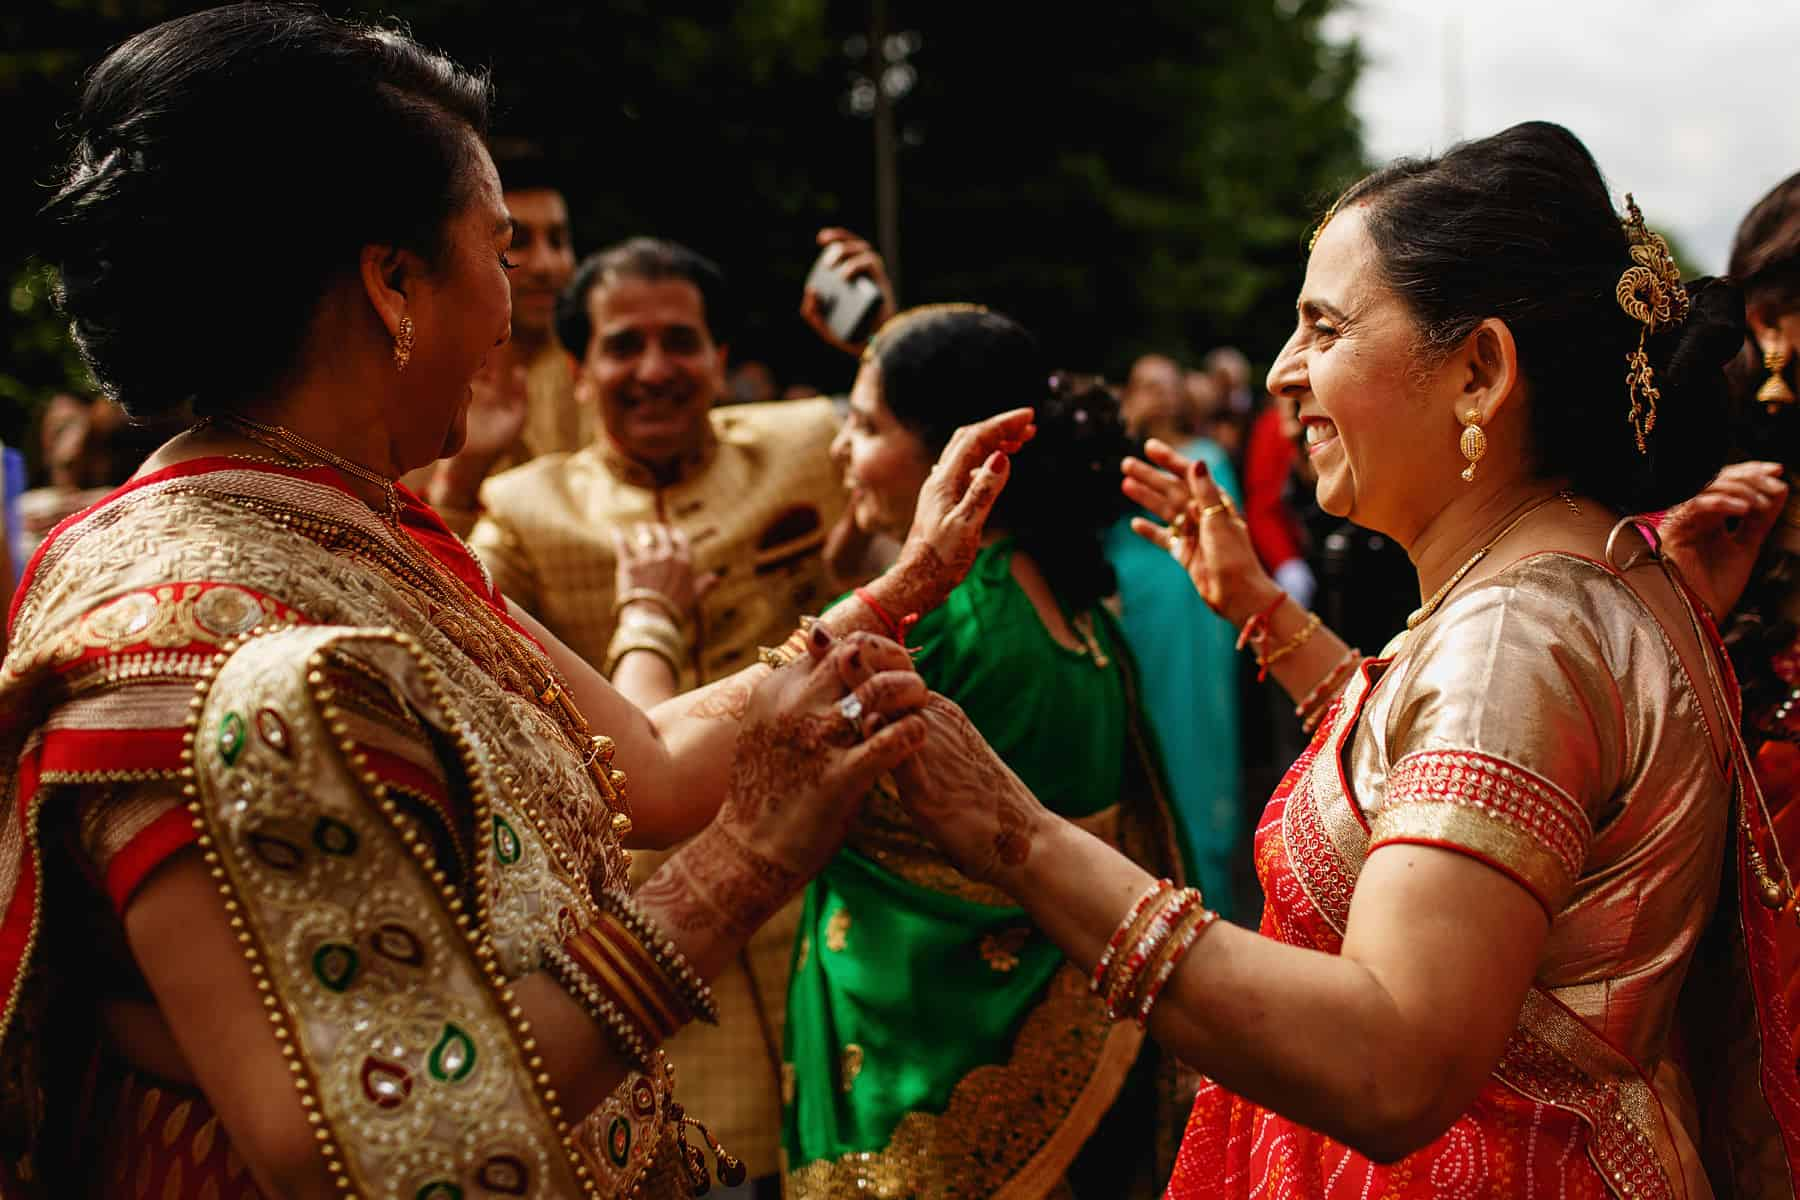 hilton t5 hindu wedding